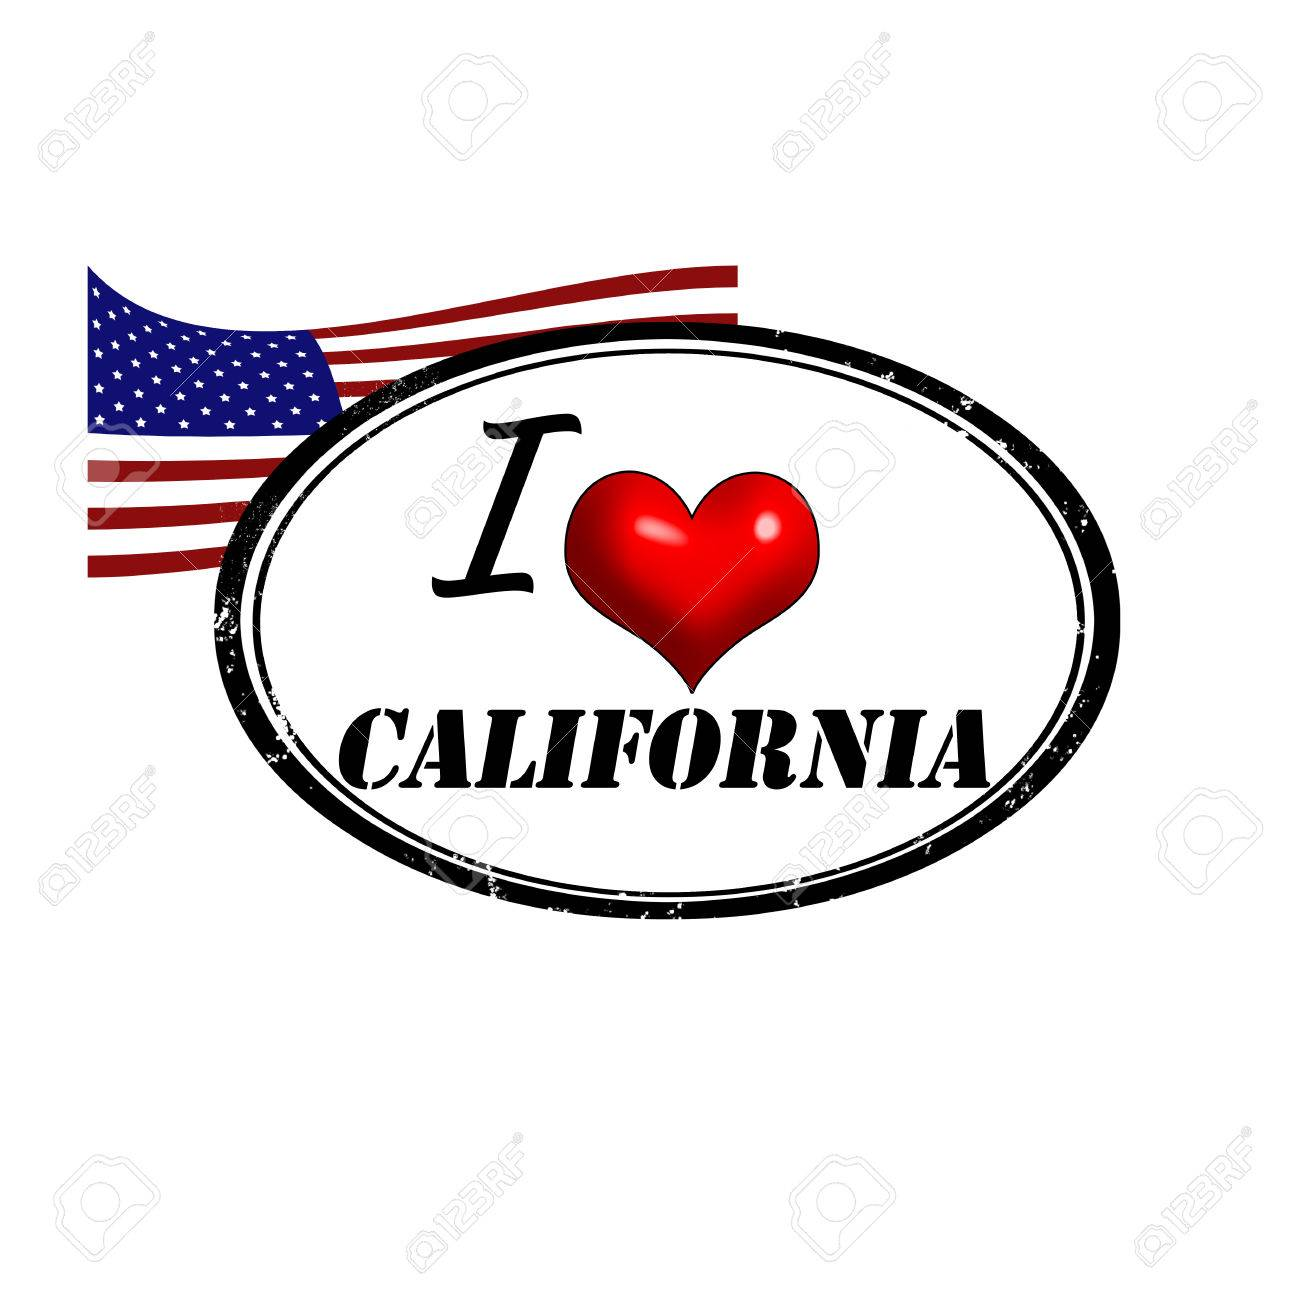 Grunge Stamp With Text I Love California Inside And USA Flag Vector Illustration Stock